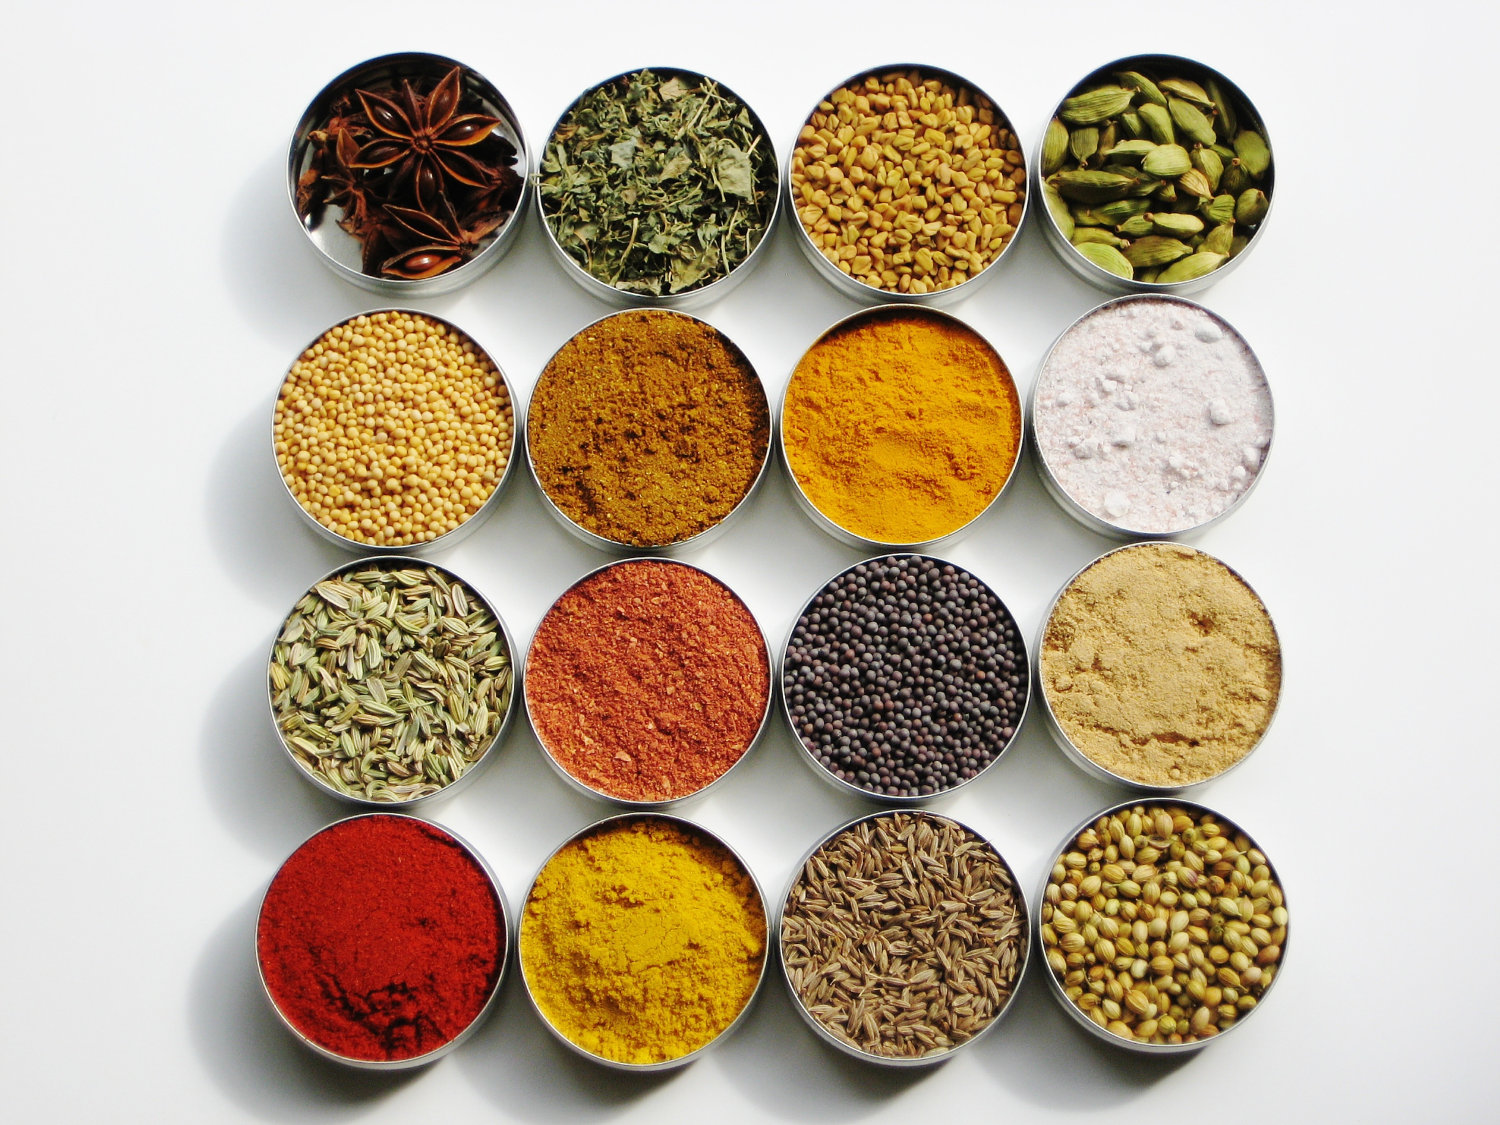 Herbs And Spices High Quality Background on Wallpapers Vista